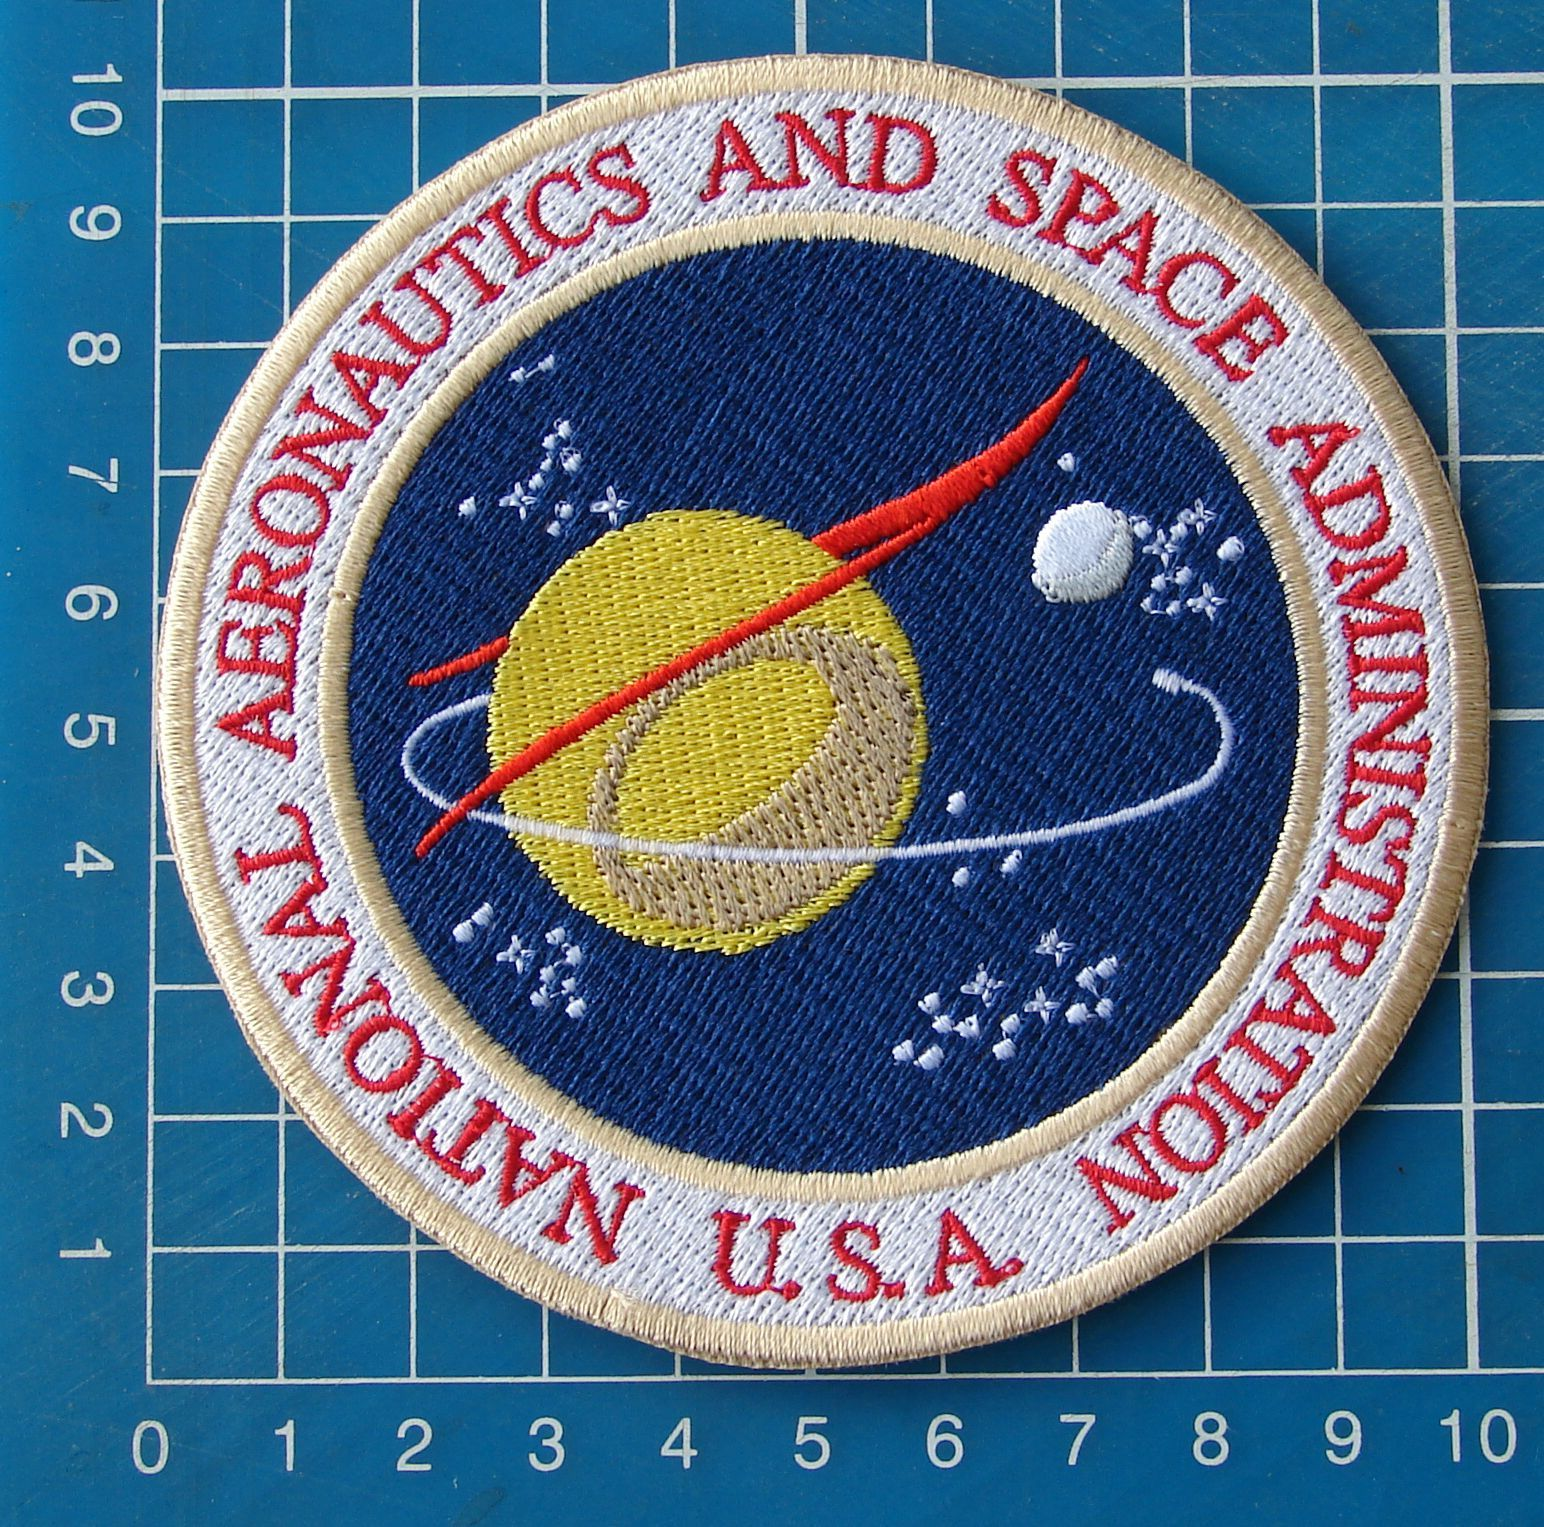 nasa patches for sale - HD1544×1527